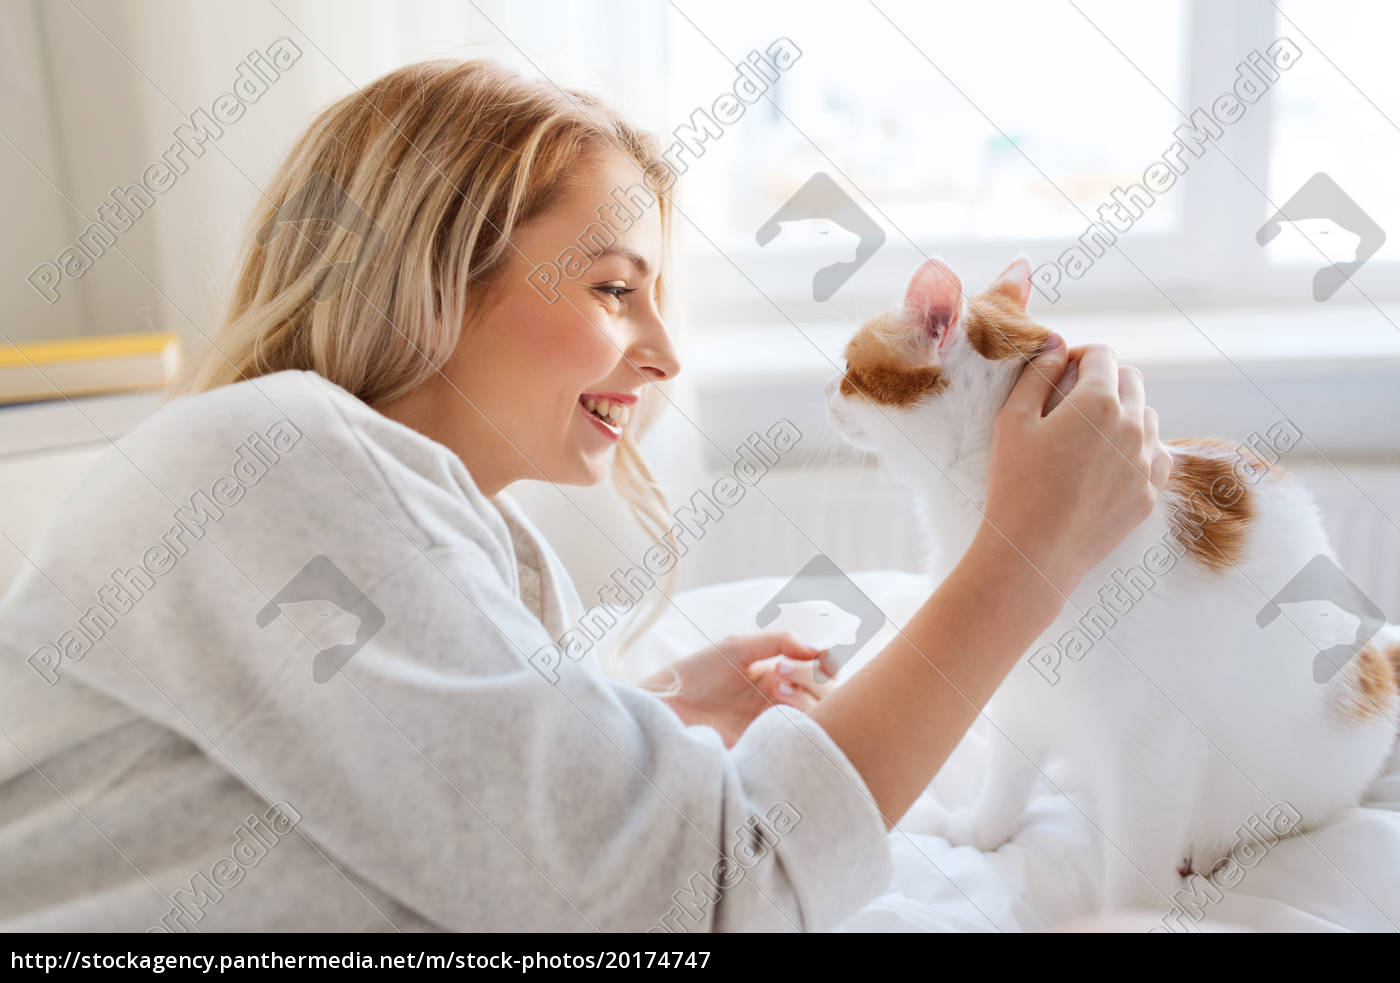 happy, young, woman, with, cat, in - 20174747